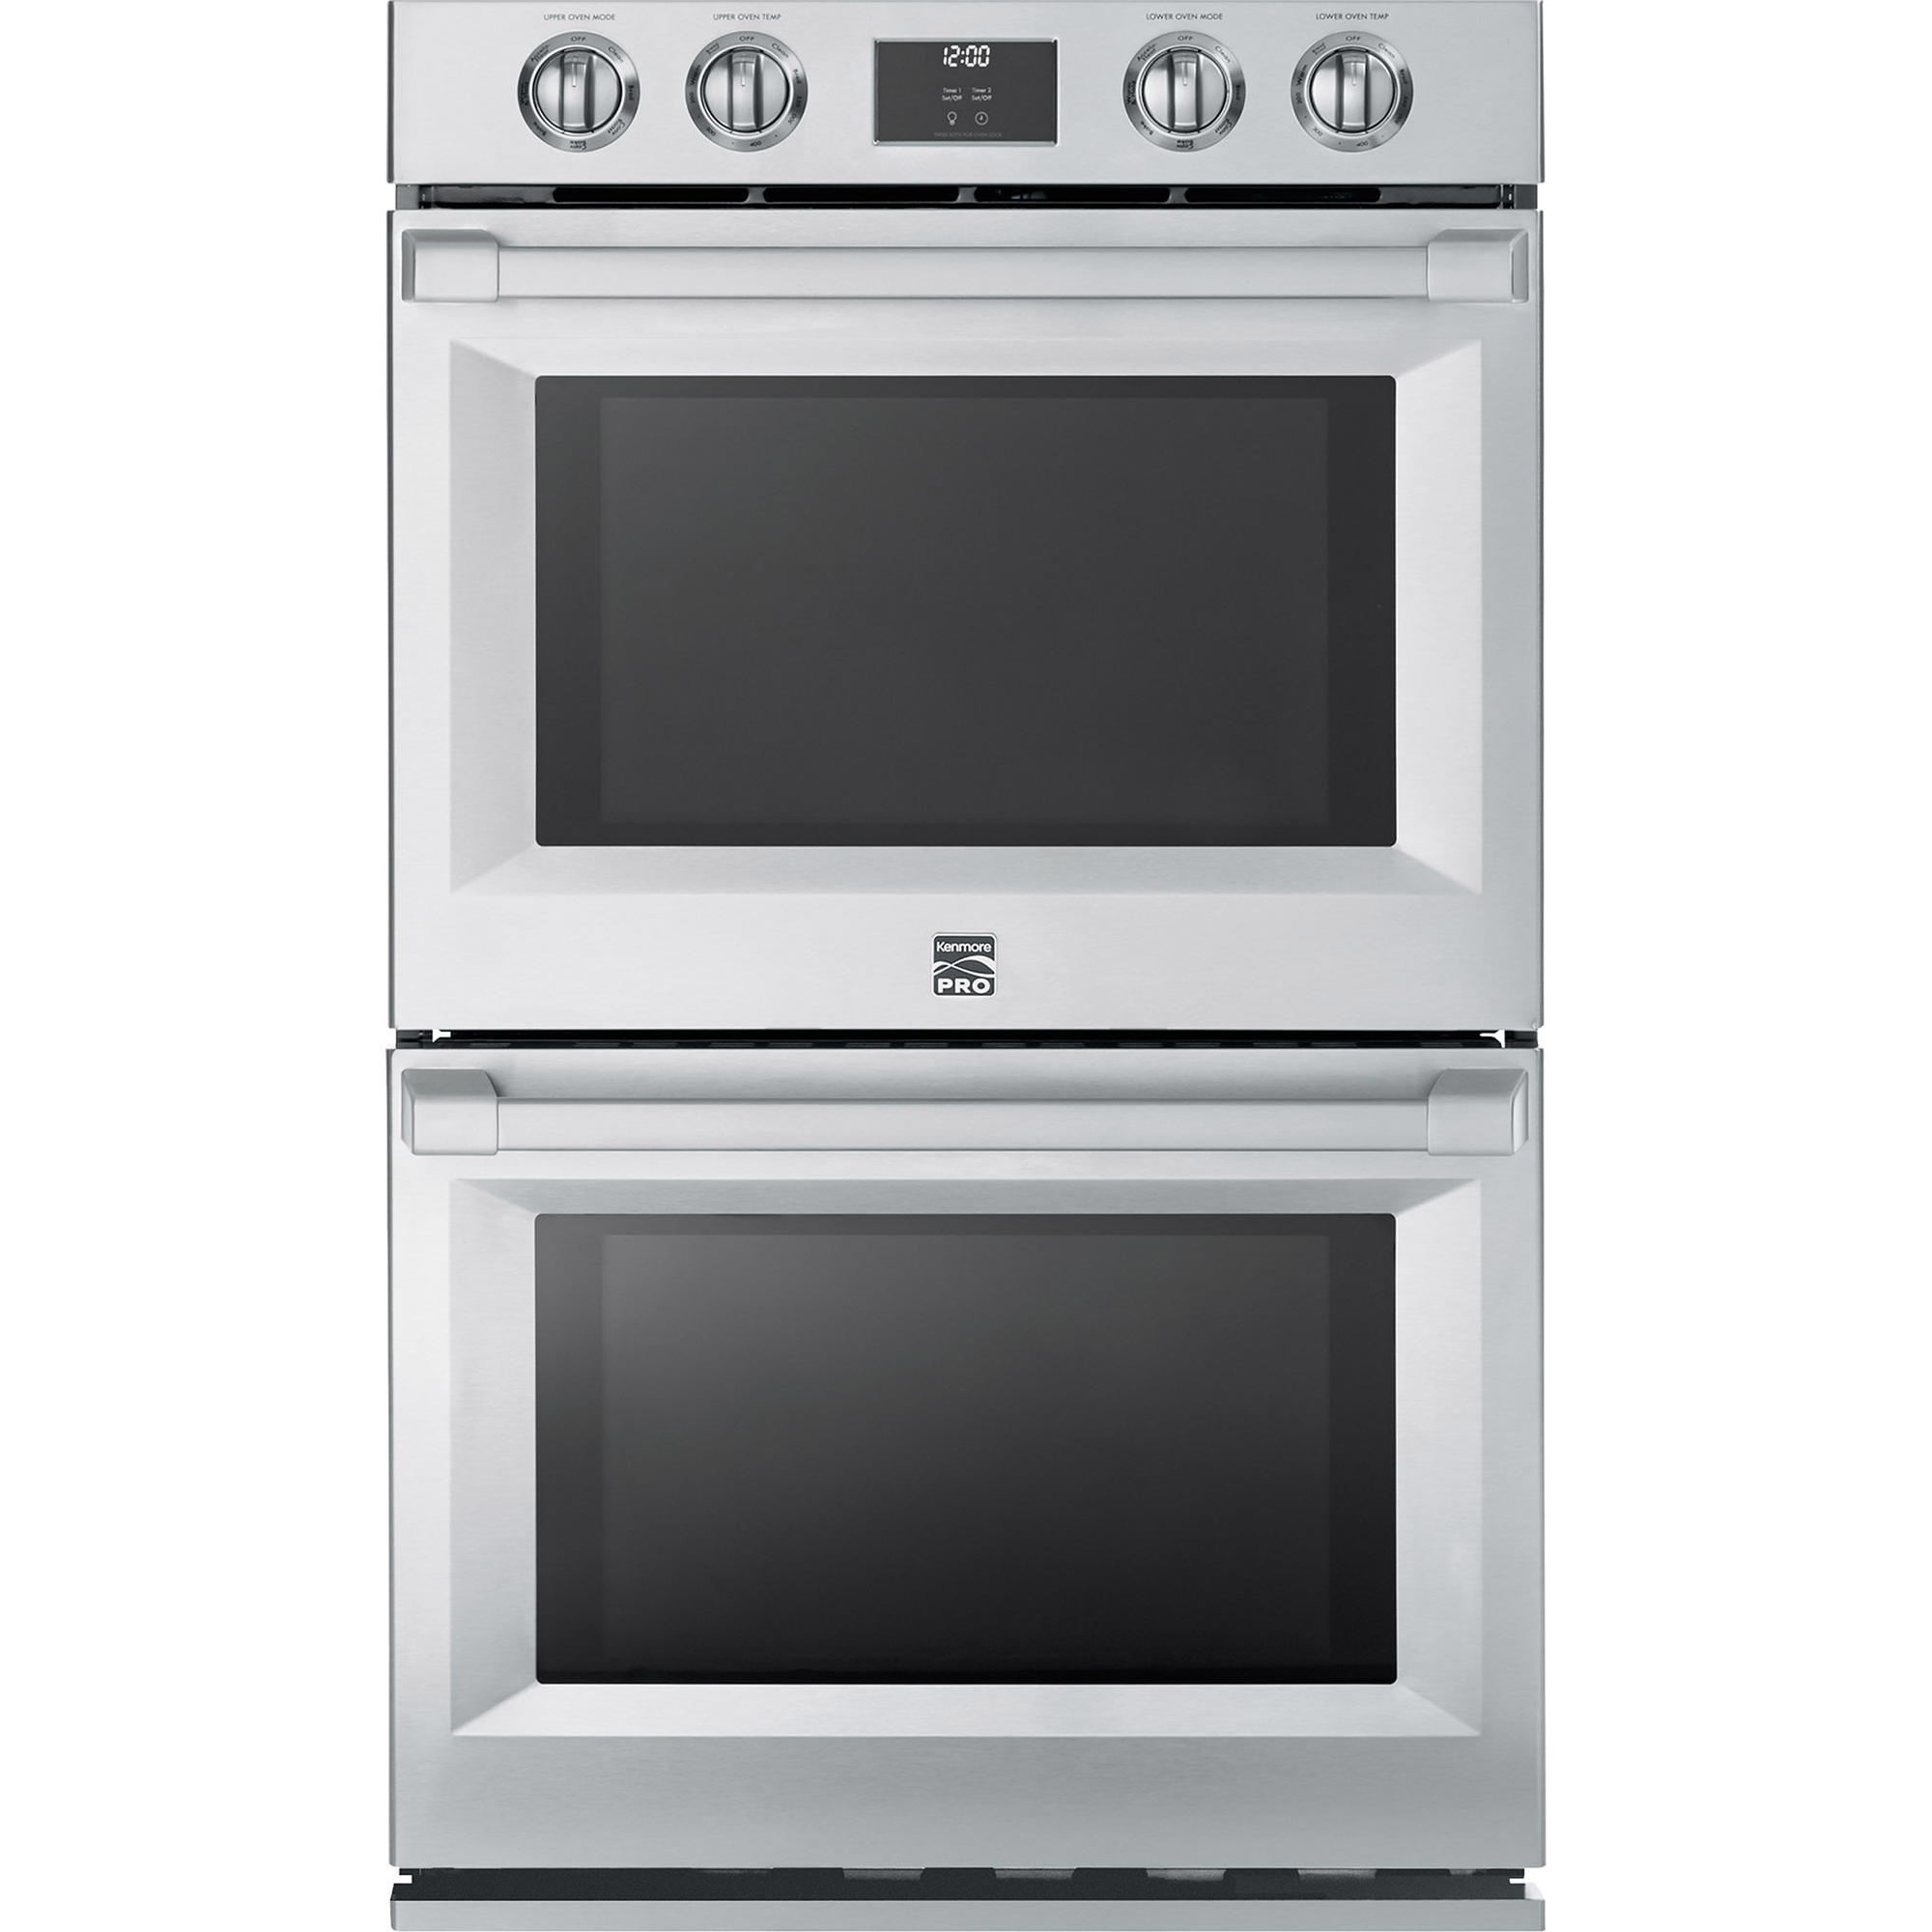 hight resolution of jenn air double wall oven wiring diagram